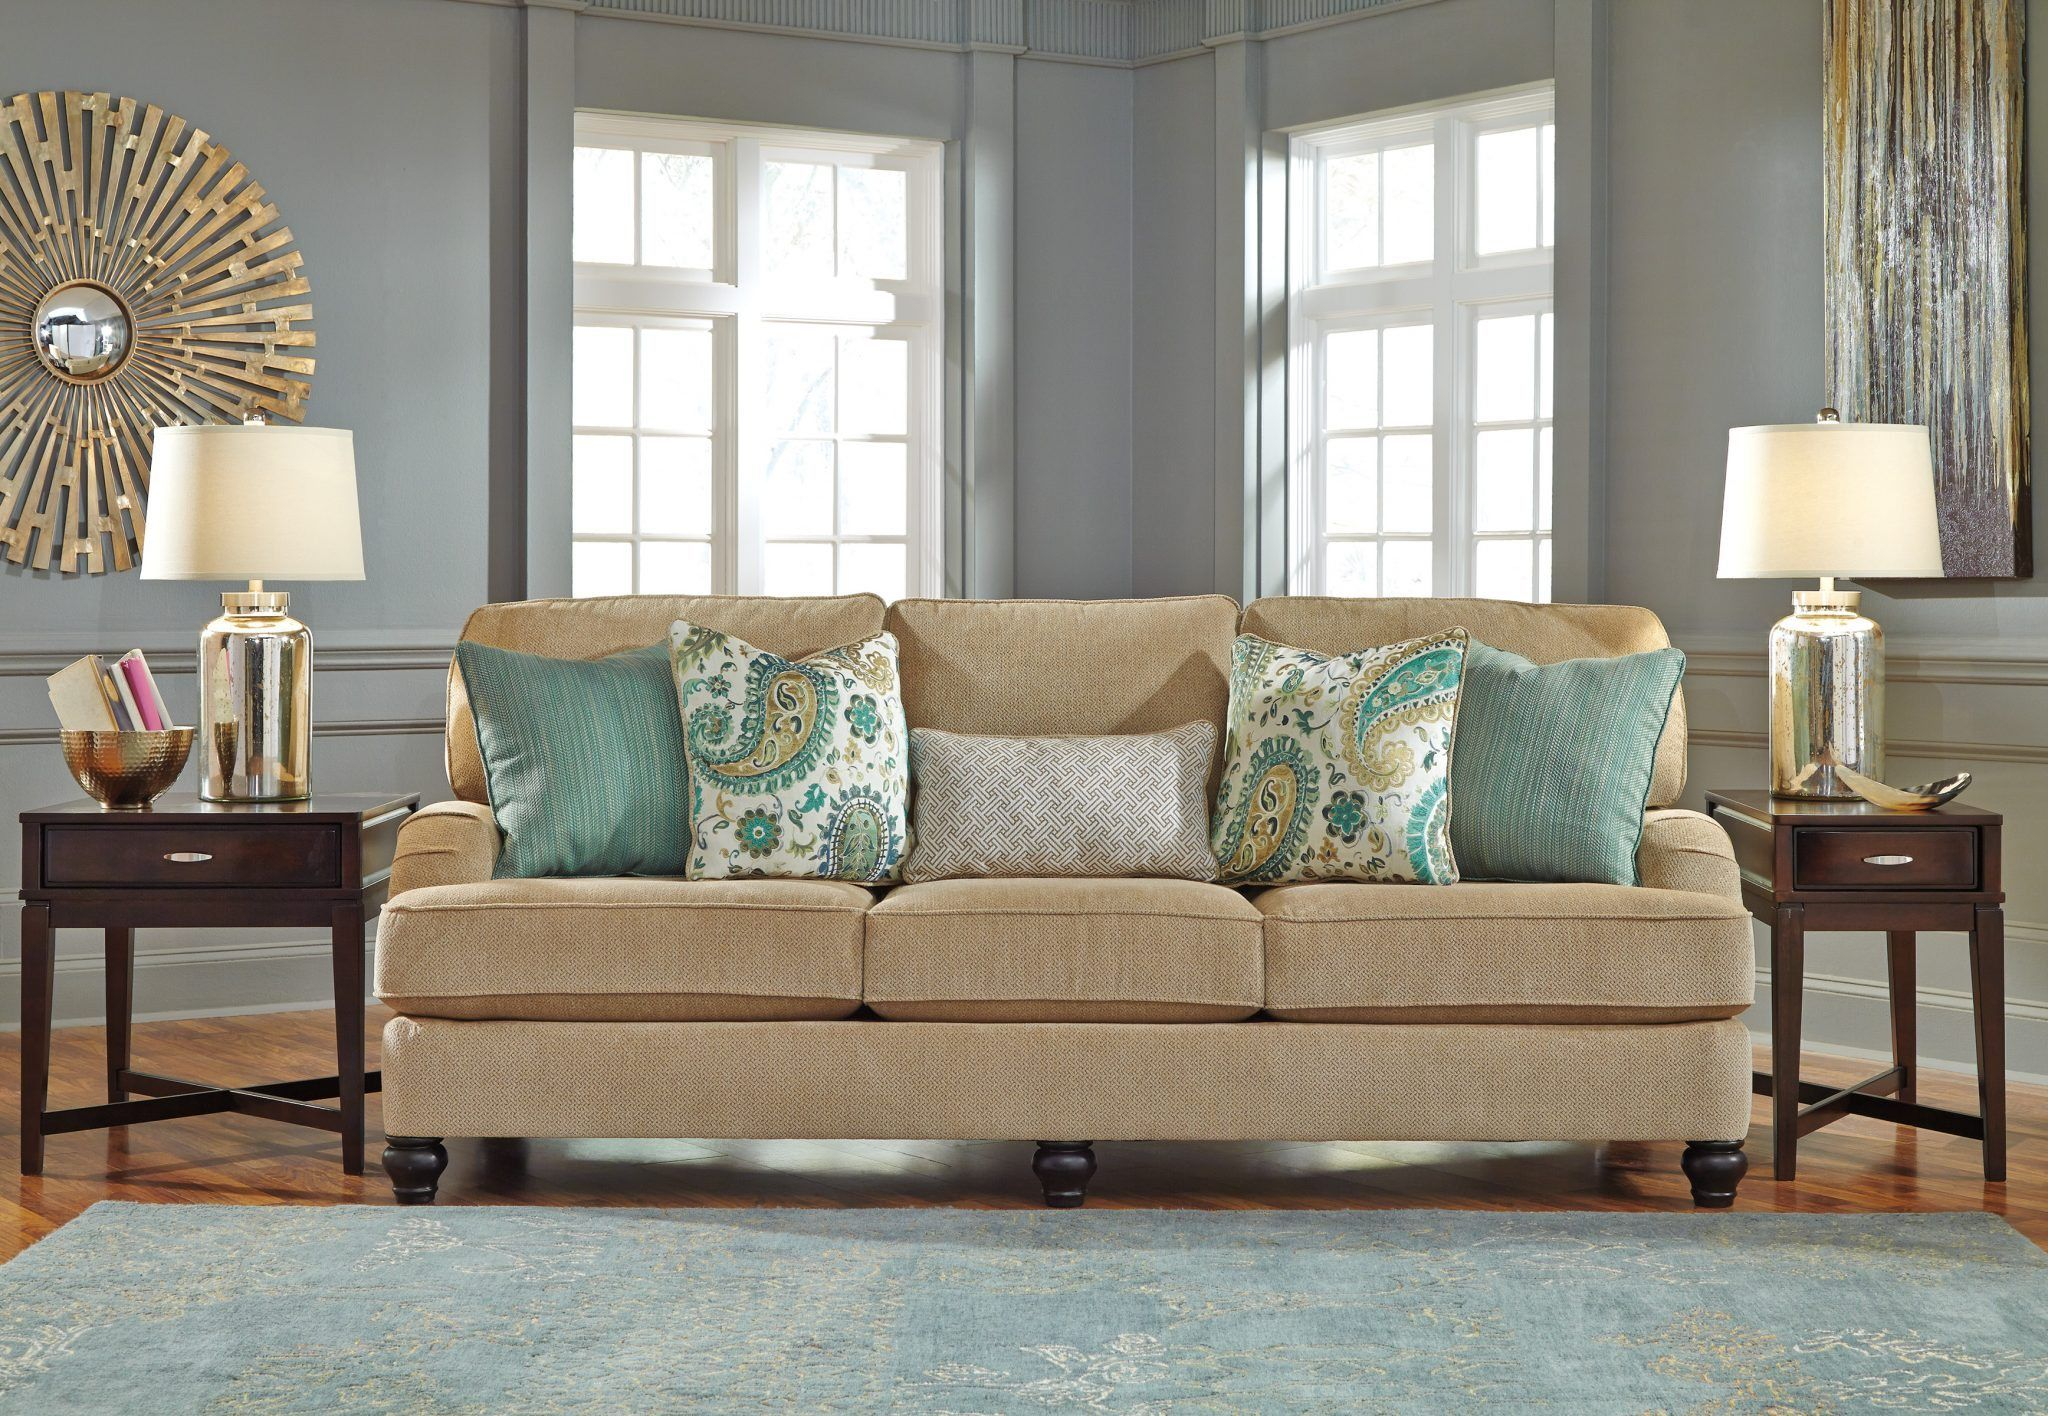 Ashley 581 Lochian Sofa 544 00 With Images Quality Living